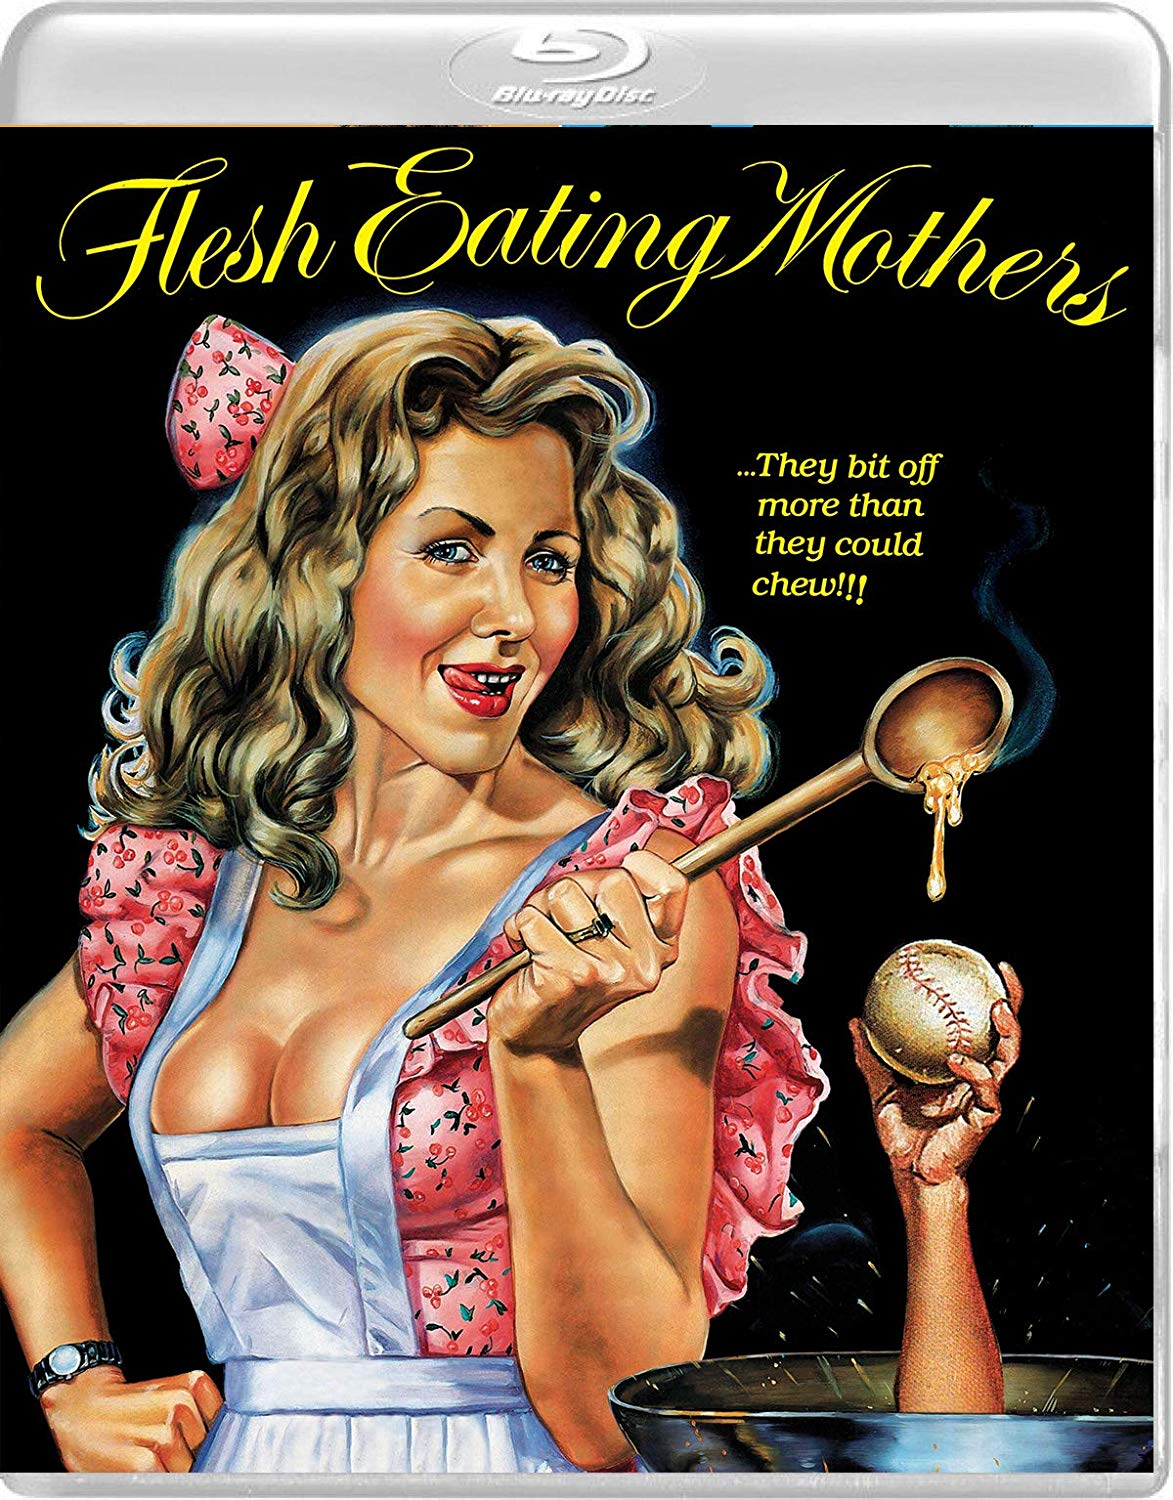 Flesh-Eating Mothers